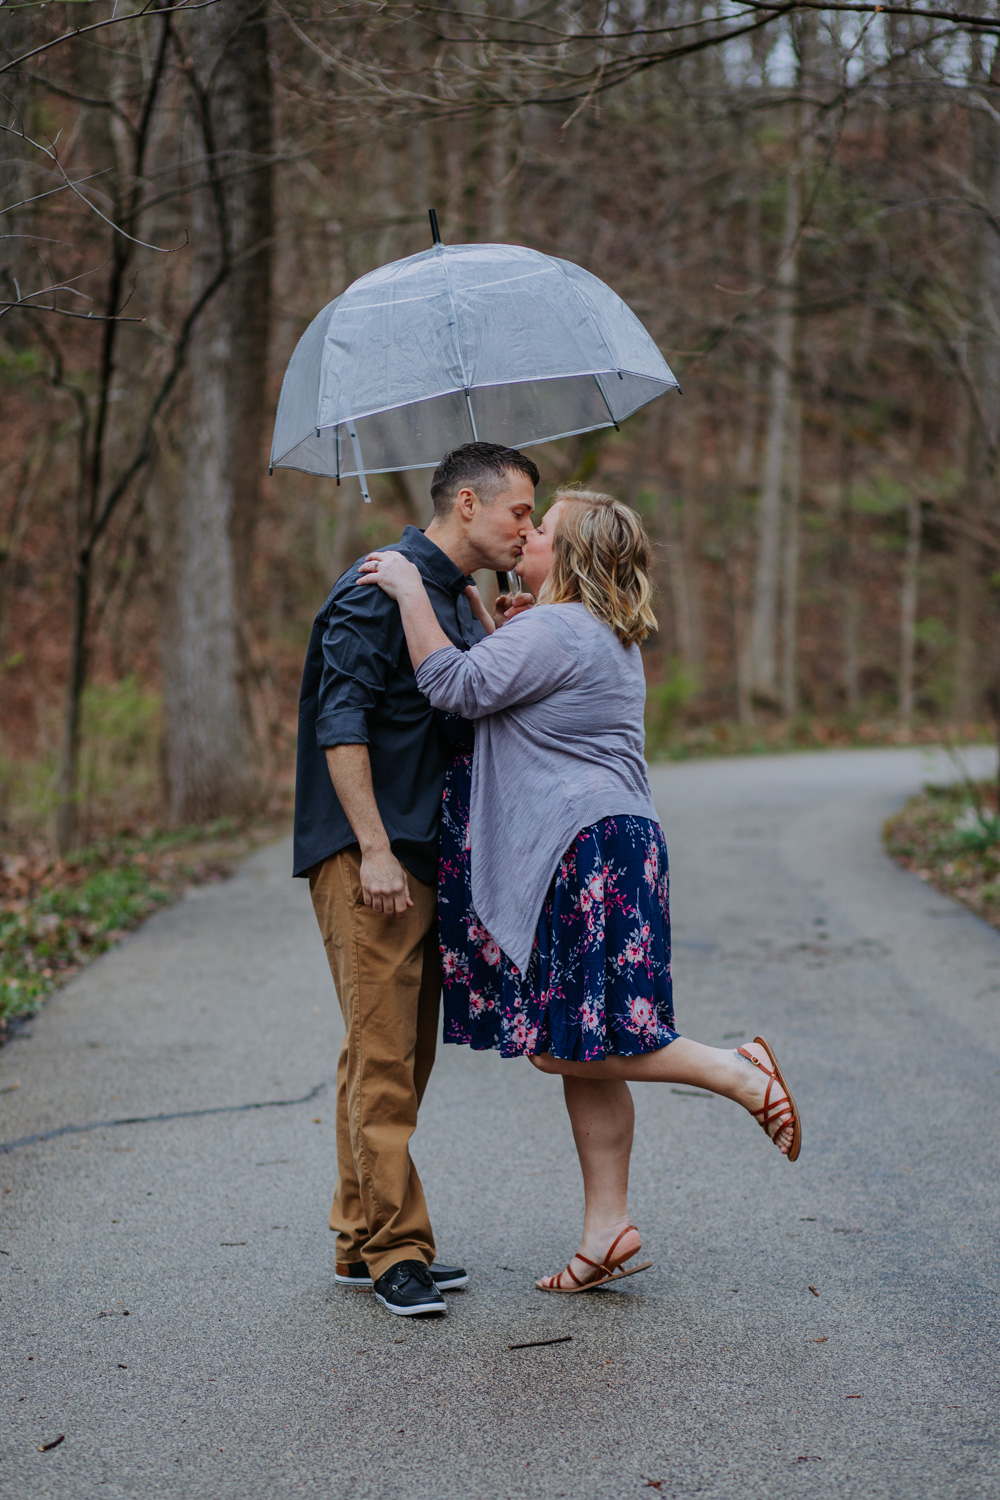 Shutter Up Studios   Engagement photographer in West Lafayette, Indiana   Rainy day couple kiss with clear umbrella at Happy Hollow Park